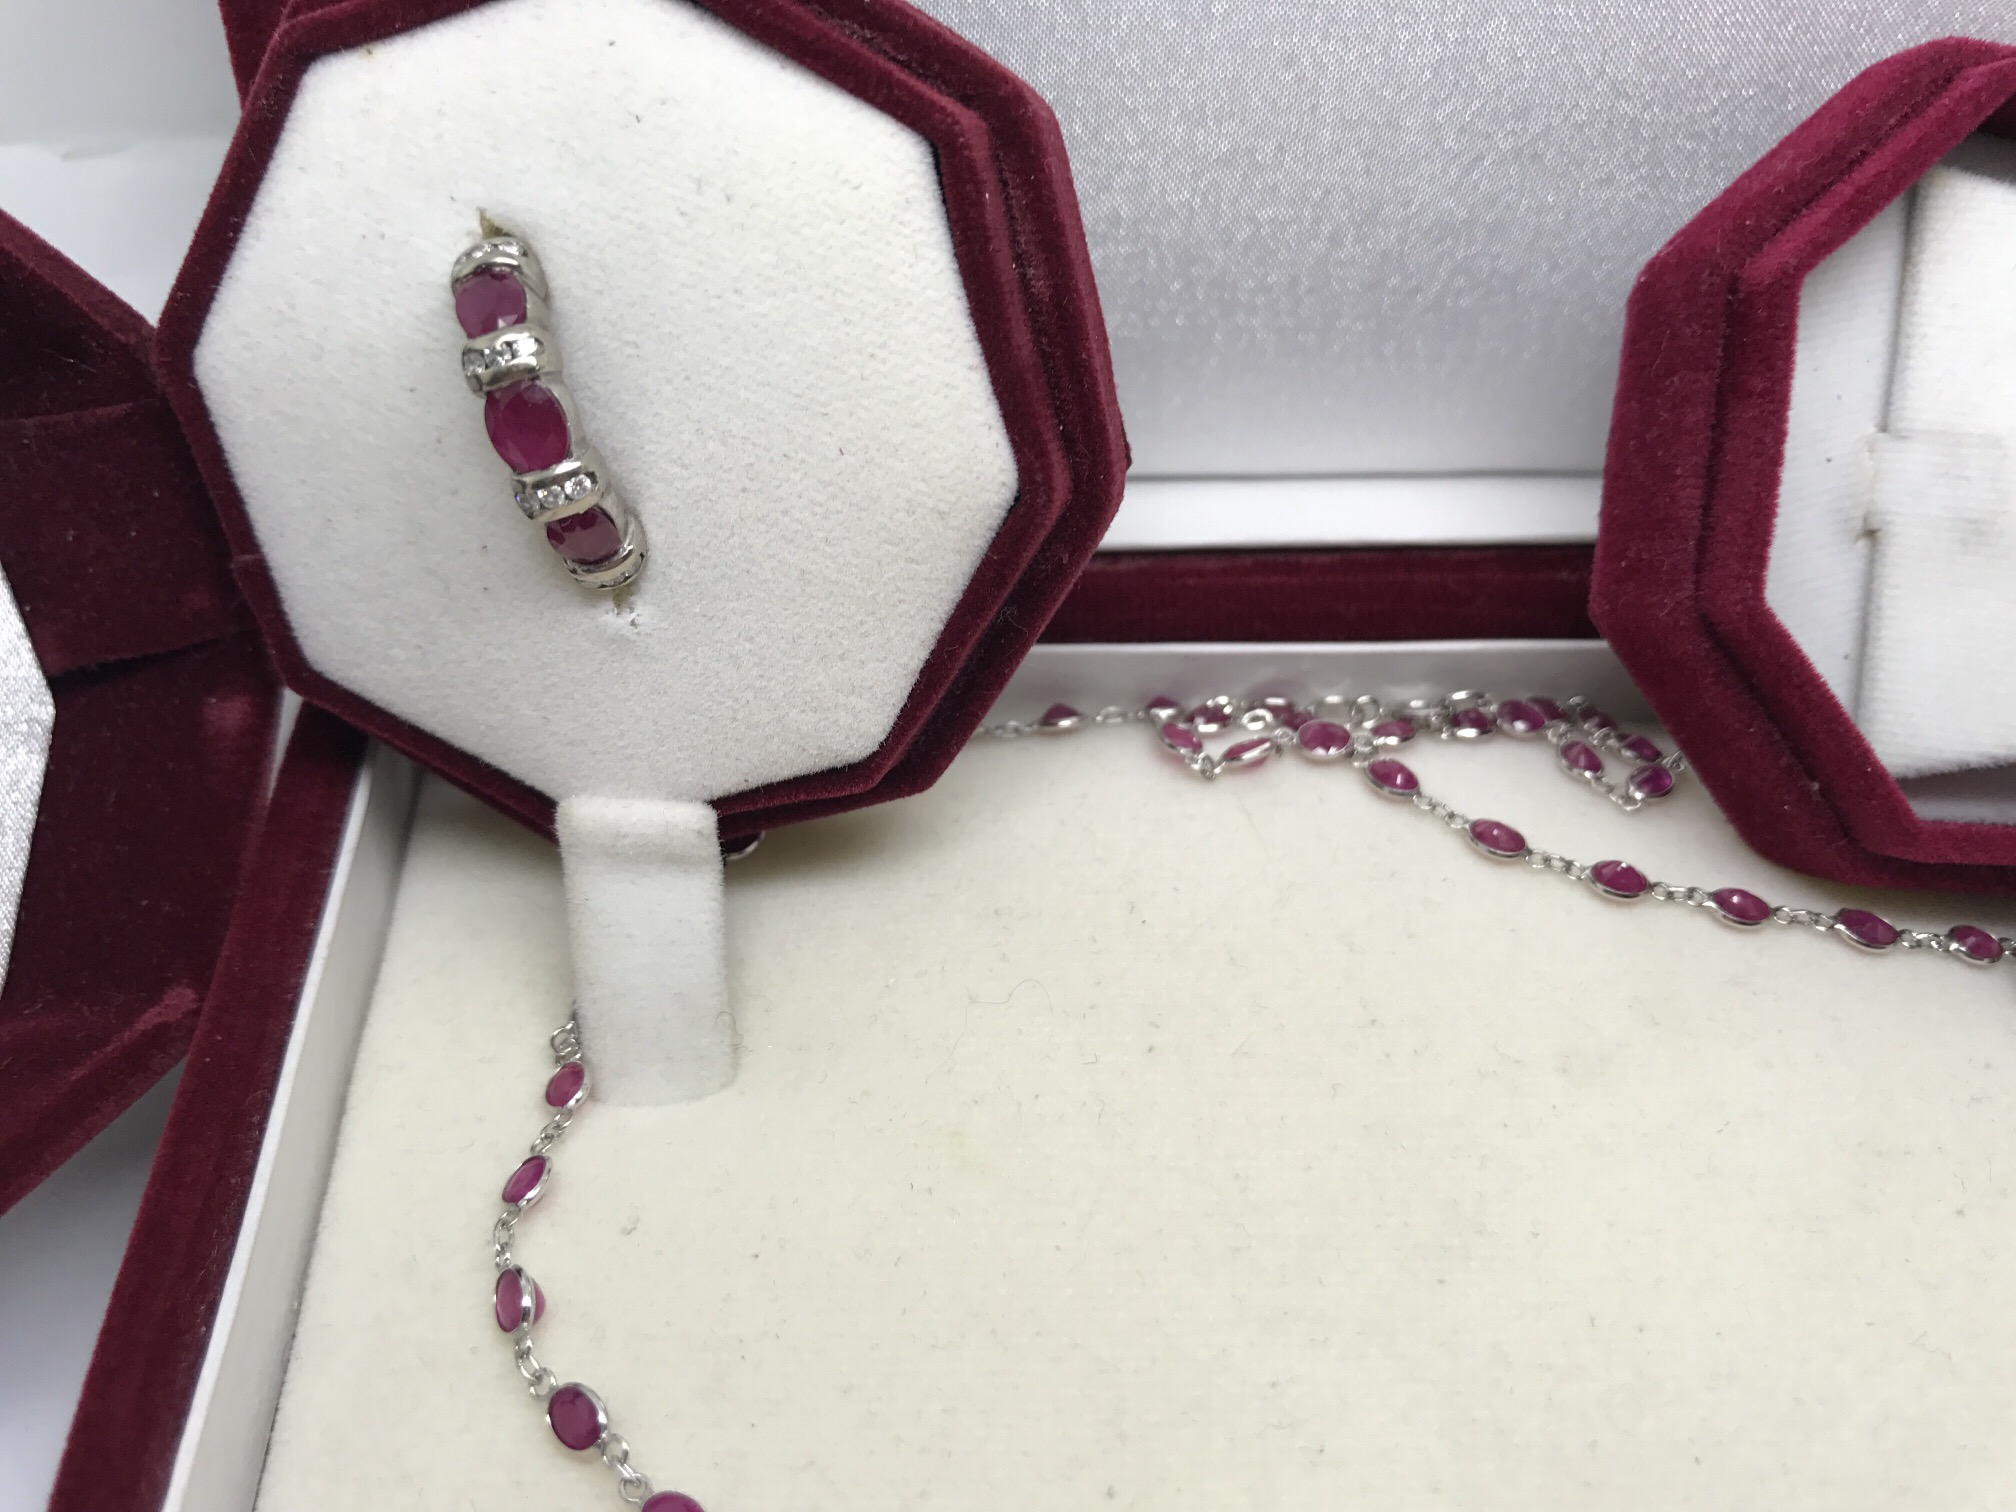 Lot 25 - FINE 18CT GOLD PINK SAPPHIRE NECKLACE 10.00CTS + 14cr RING & 14ct EARRINGS